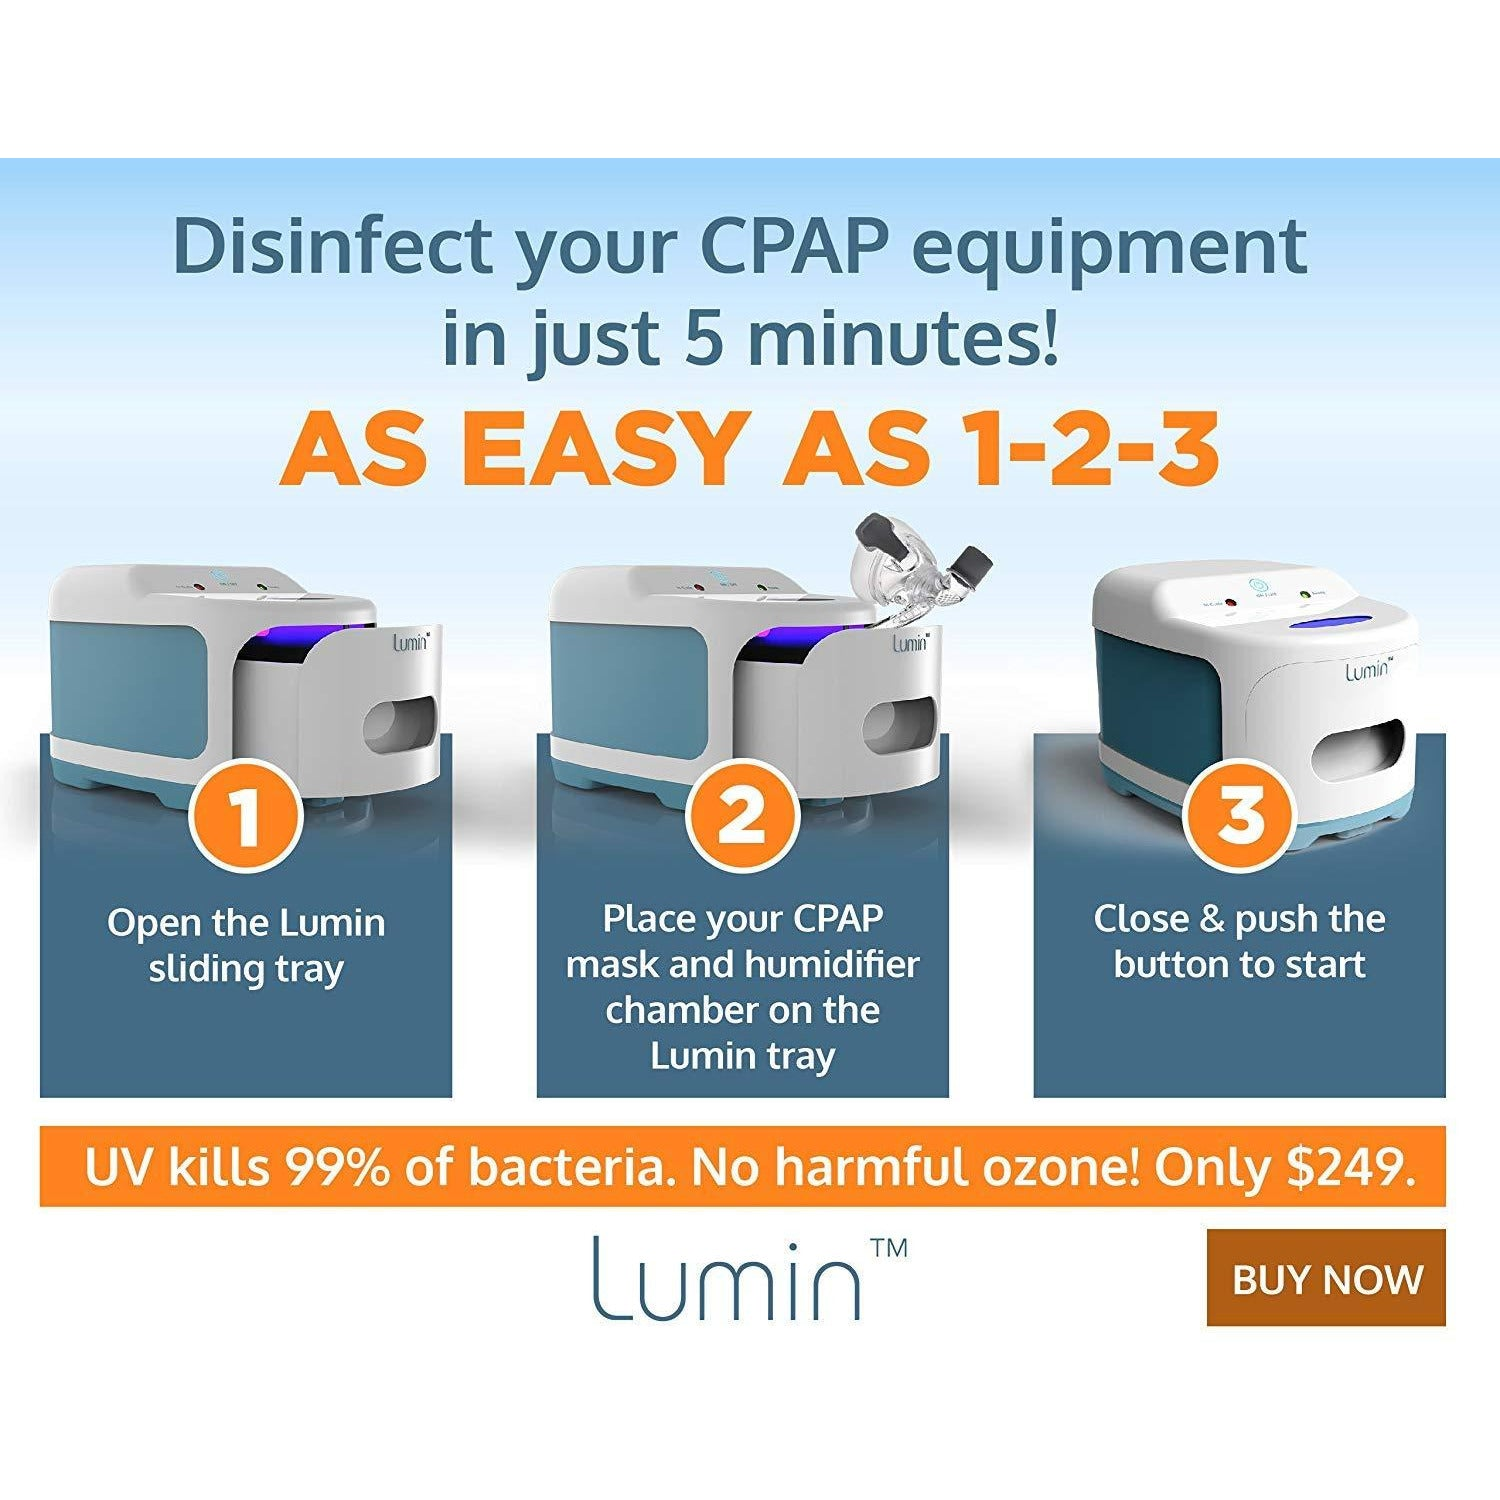 CPAP Cleaner & Sanitizer by Lumin | NO OZONE | UV Light to Kill Germs and Pathogens